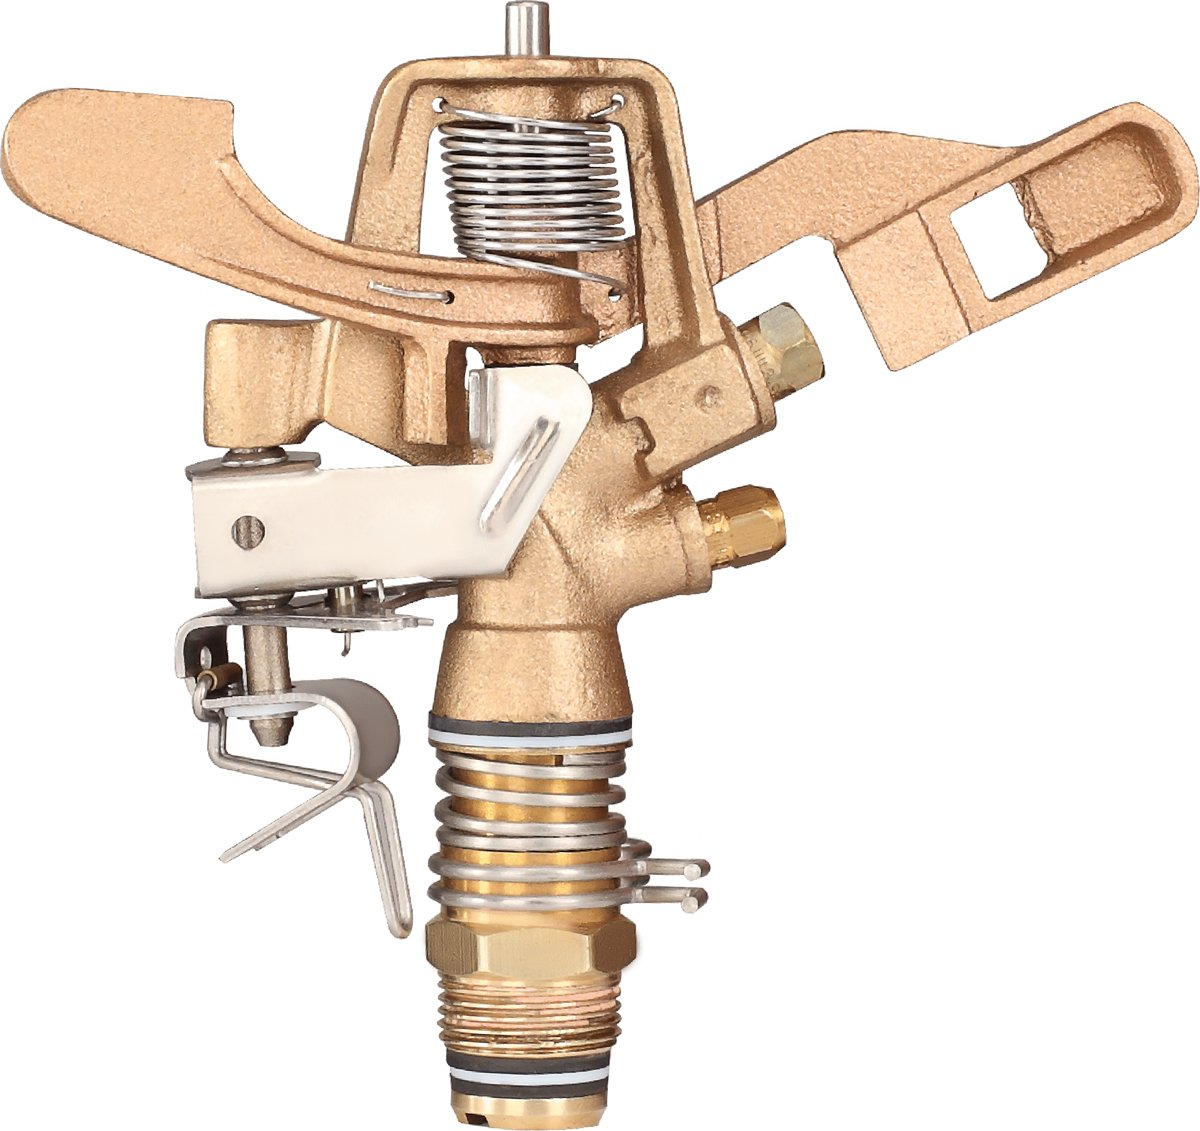 """IrrigationKing RK-35 3/4"""" Part Circle Brass Impact Sprinkler with Nozzles - 11/64"""" x 1/8"""", NPT Male, 12.6 GSM Maximum Flow Rate"""